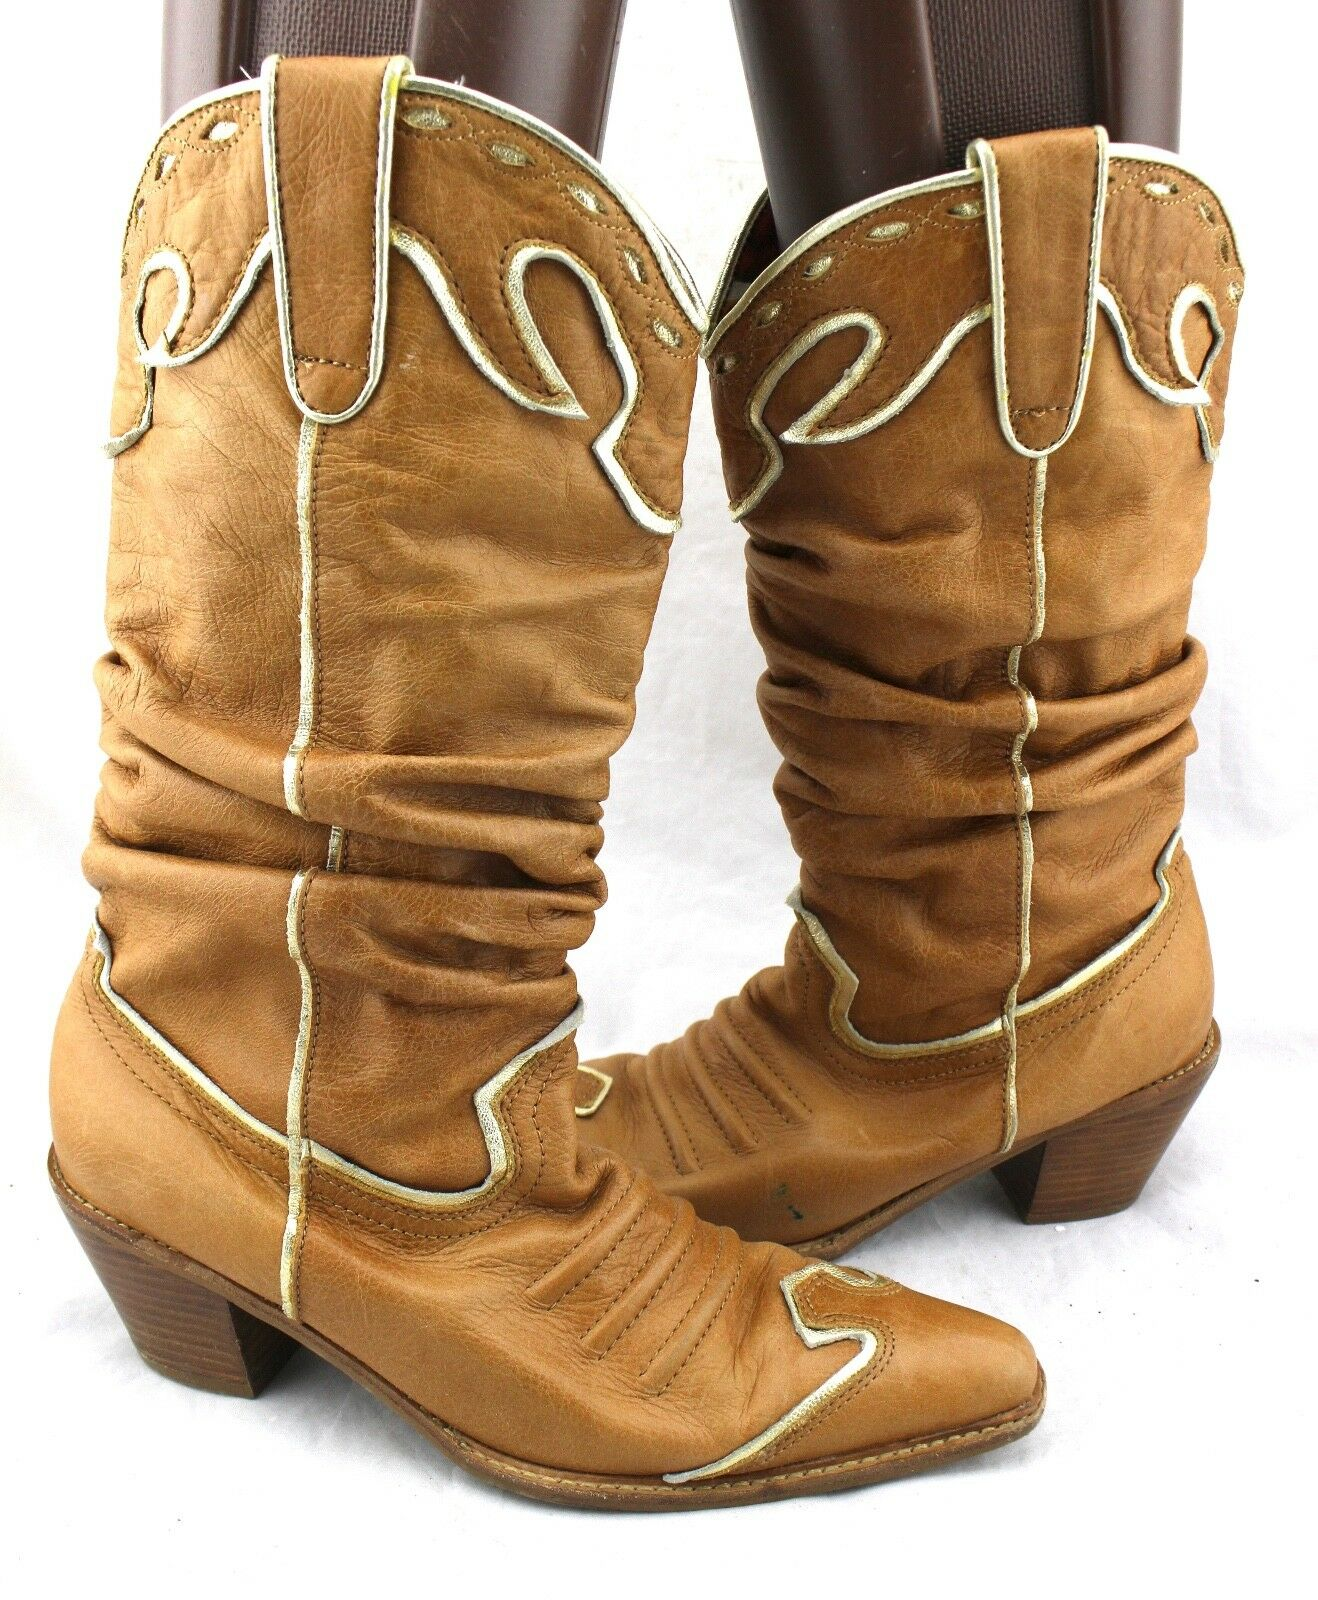 Na Na NANA Camel Tan Leather gold Trim Cowgirl Western Scrunch Slouch Boots 9.5